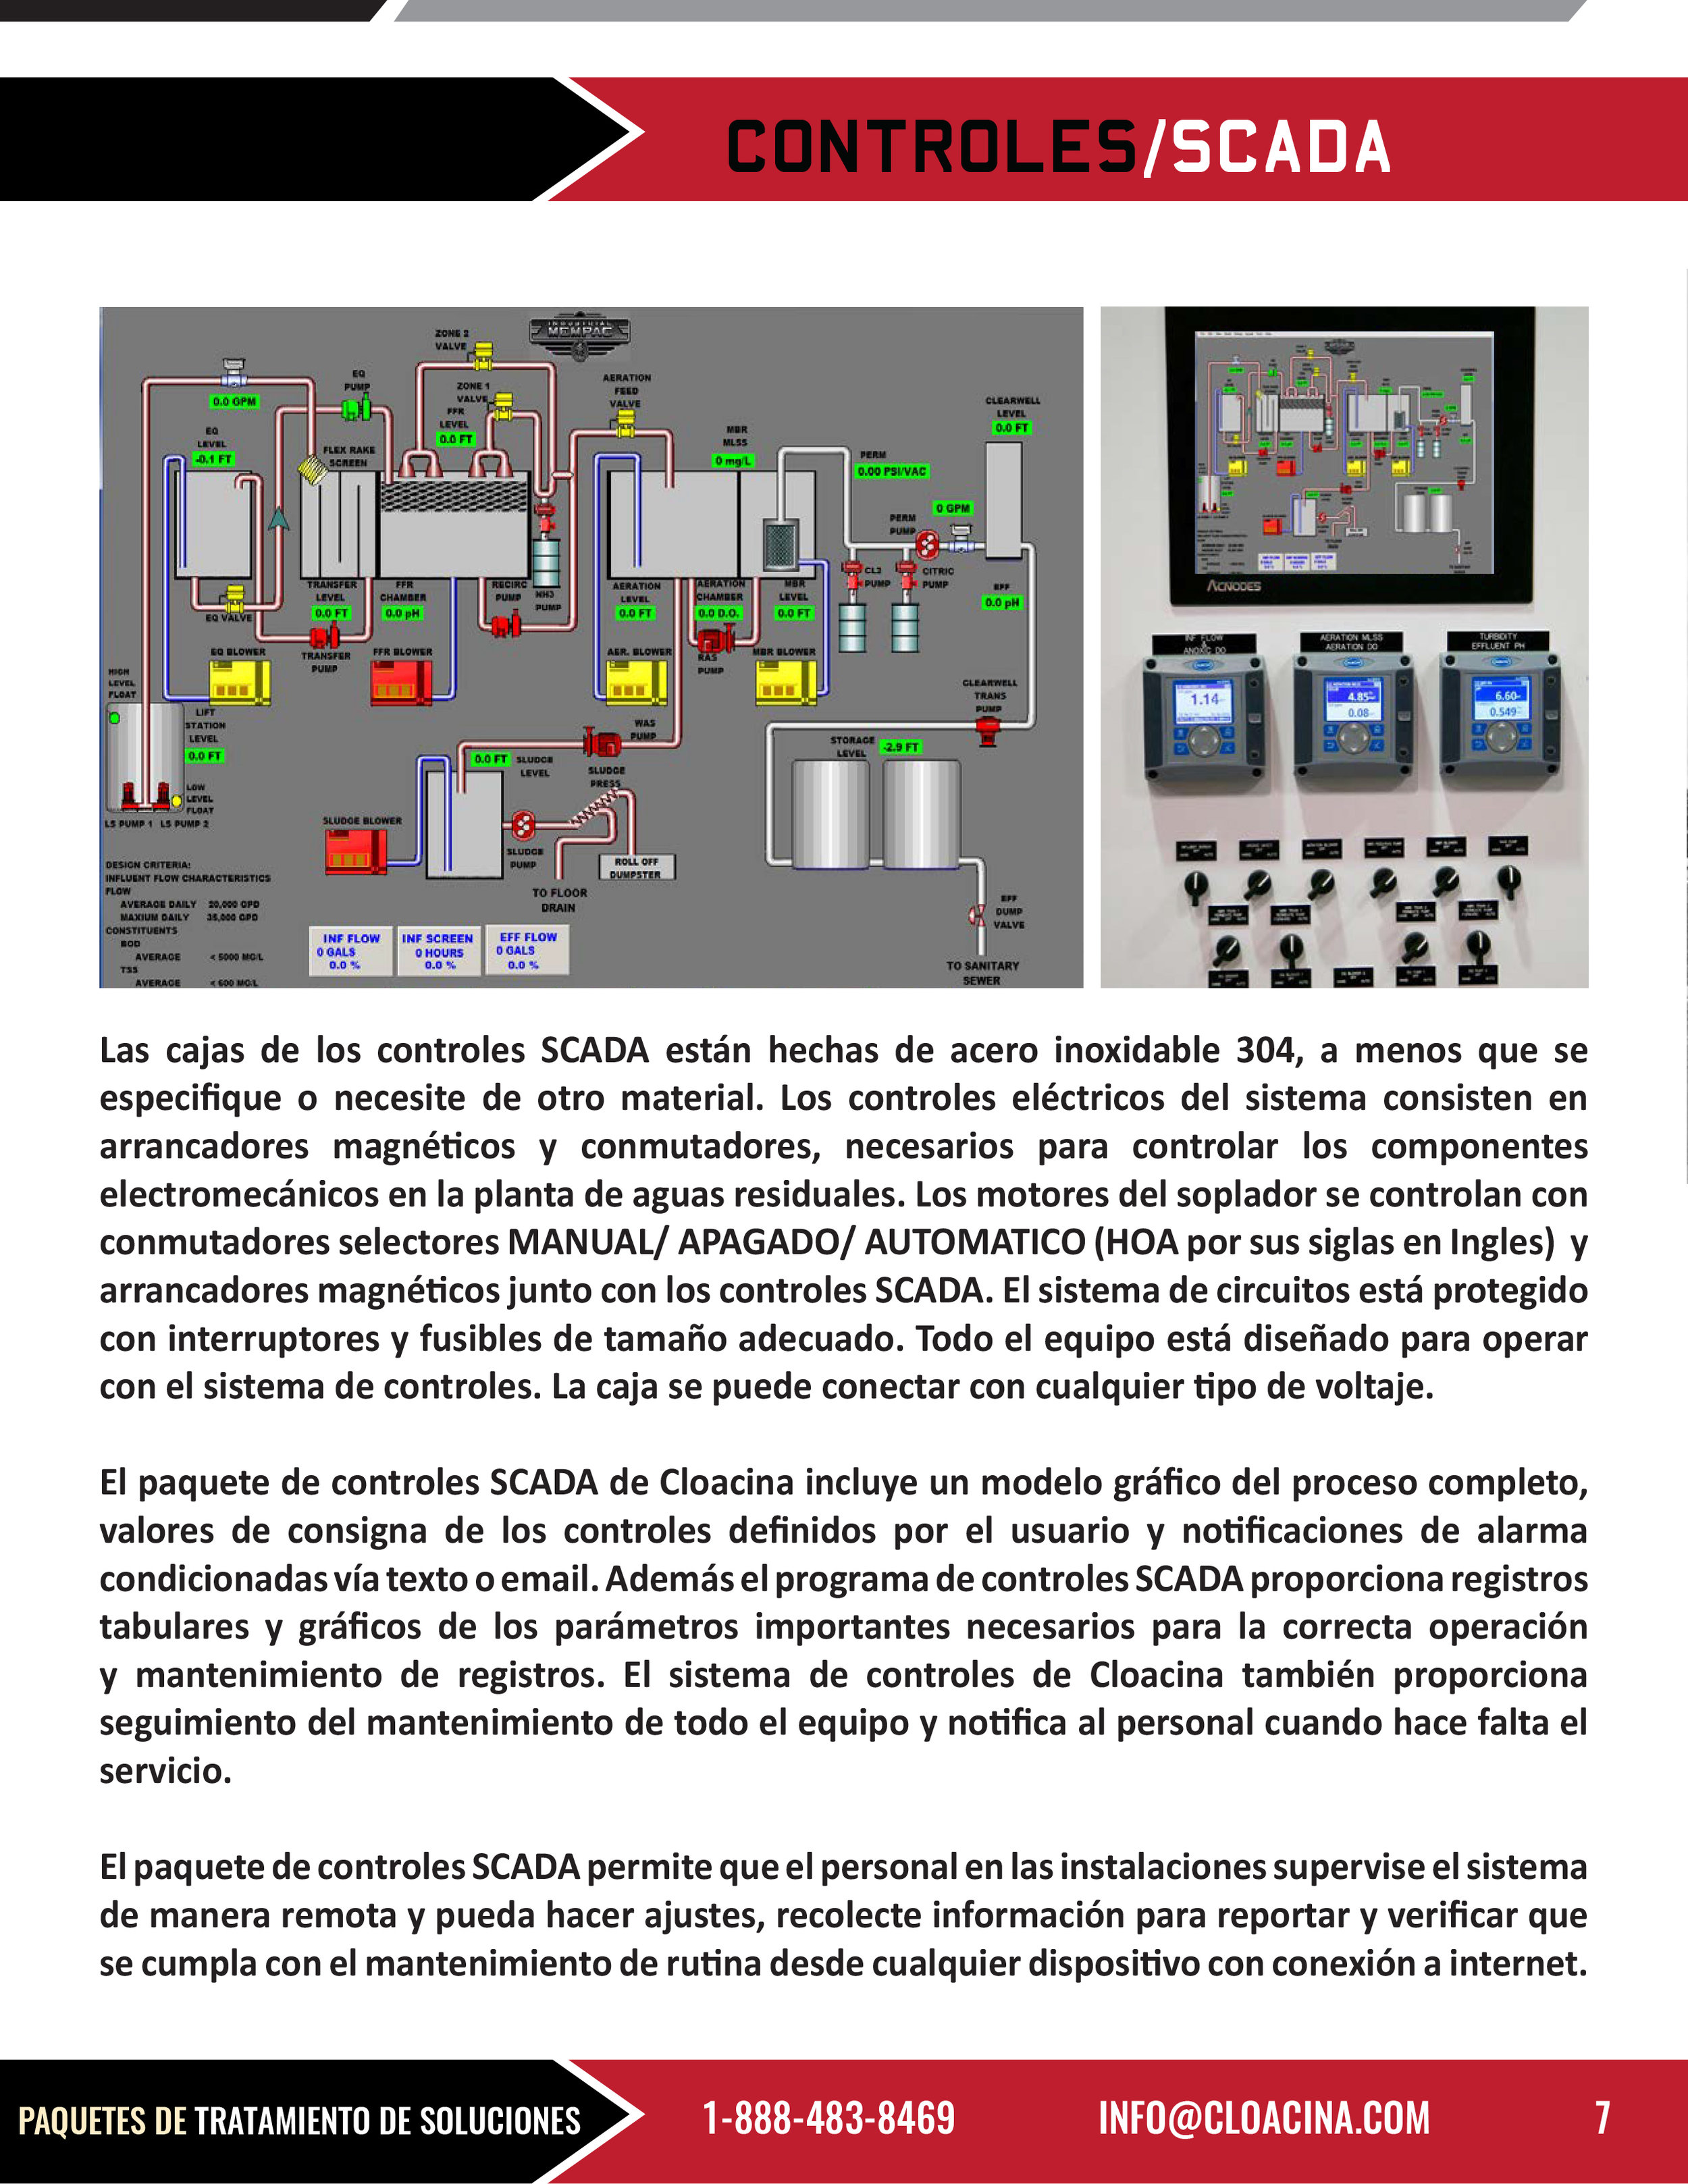 MEMPAC-I-Spanish copy-8.jpg